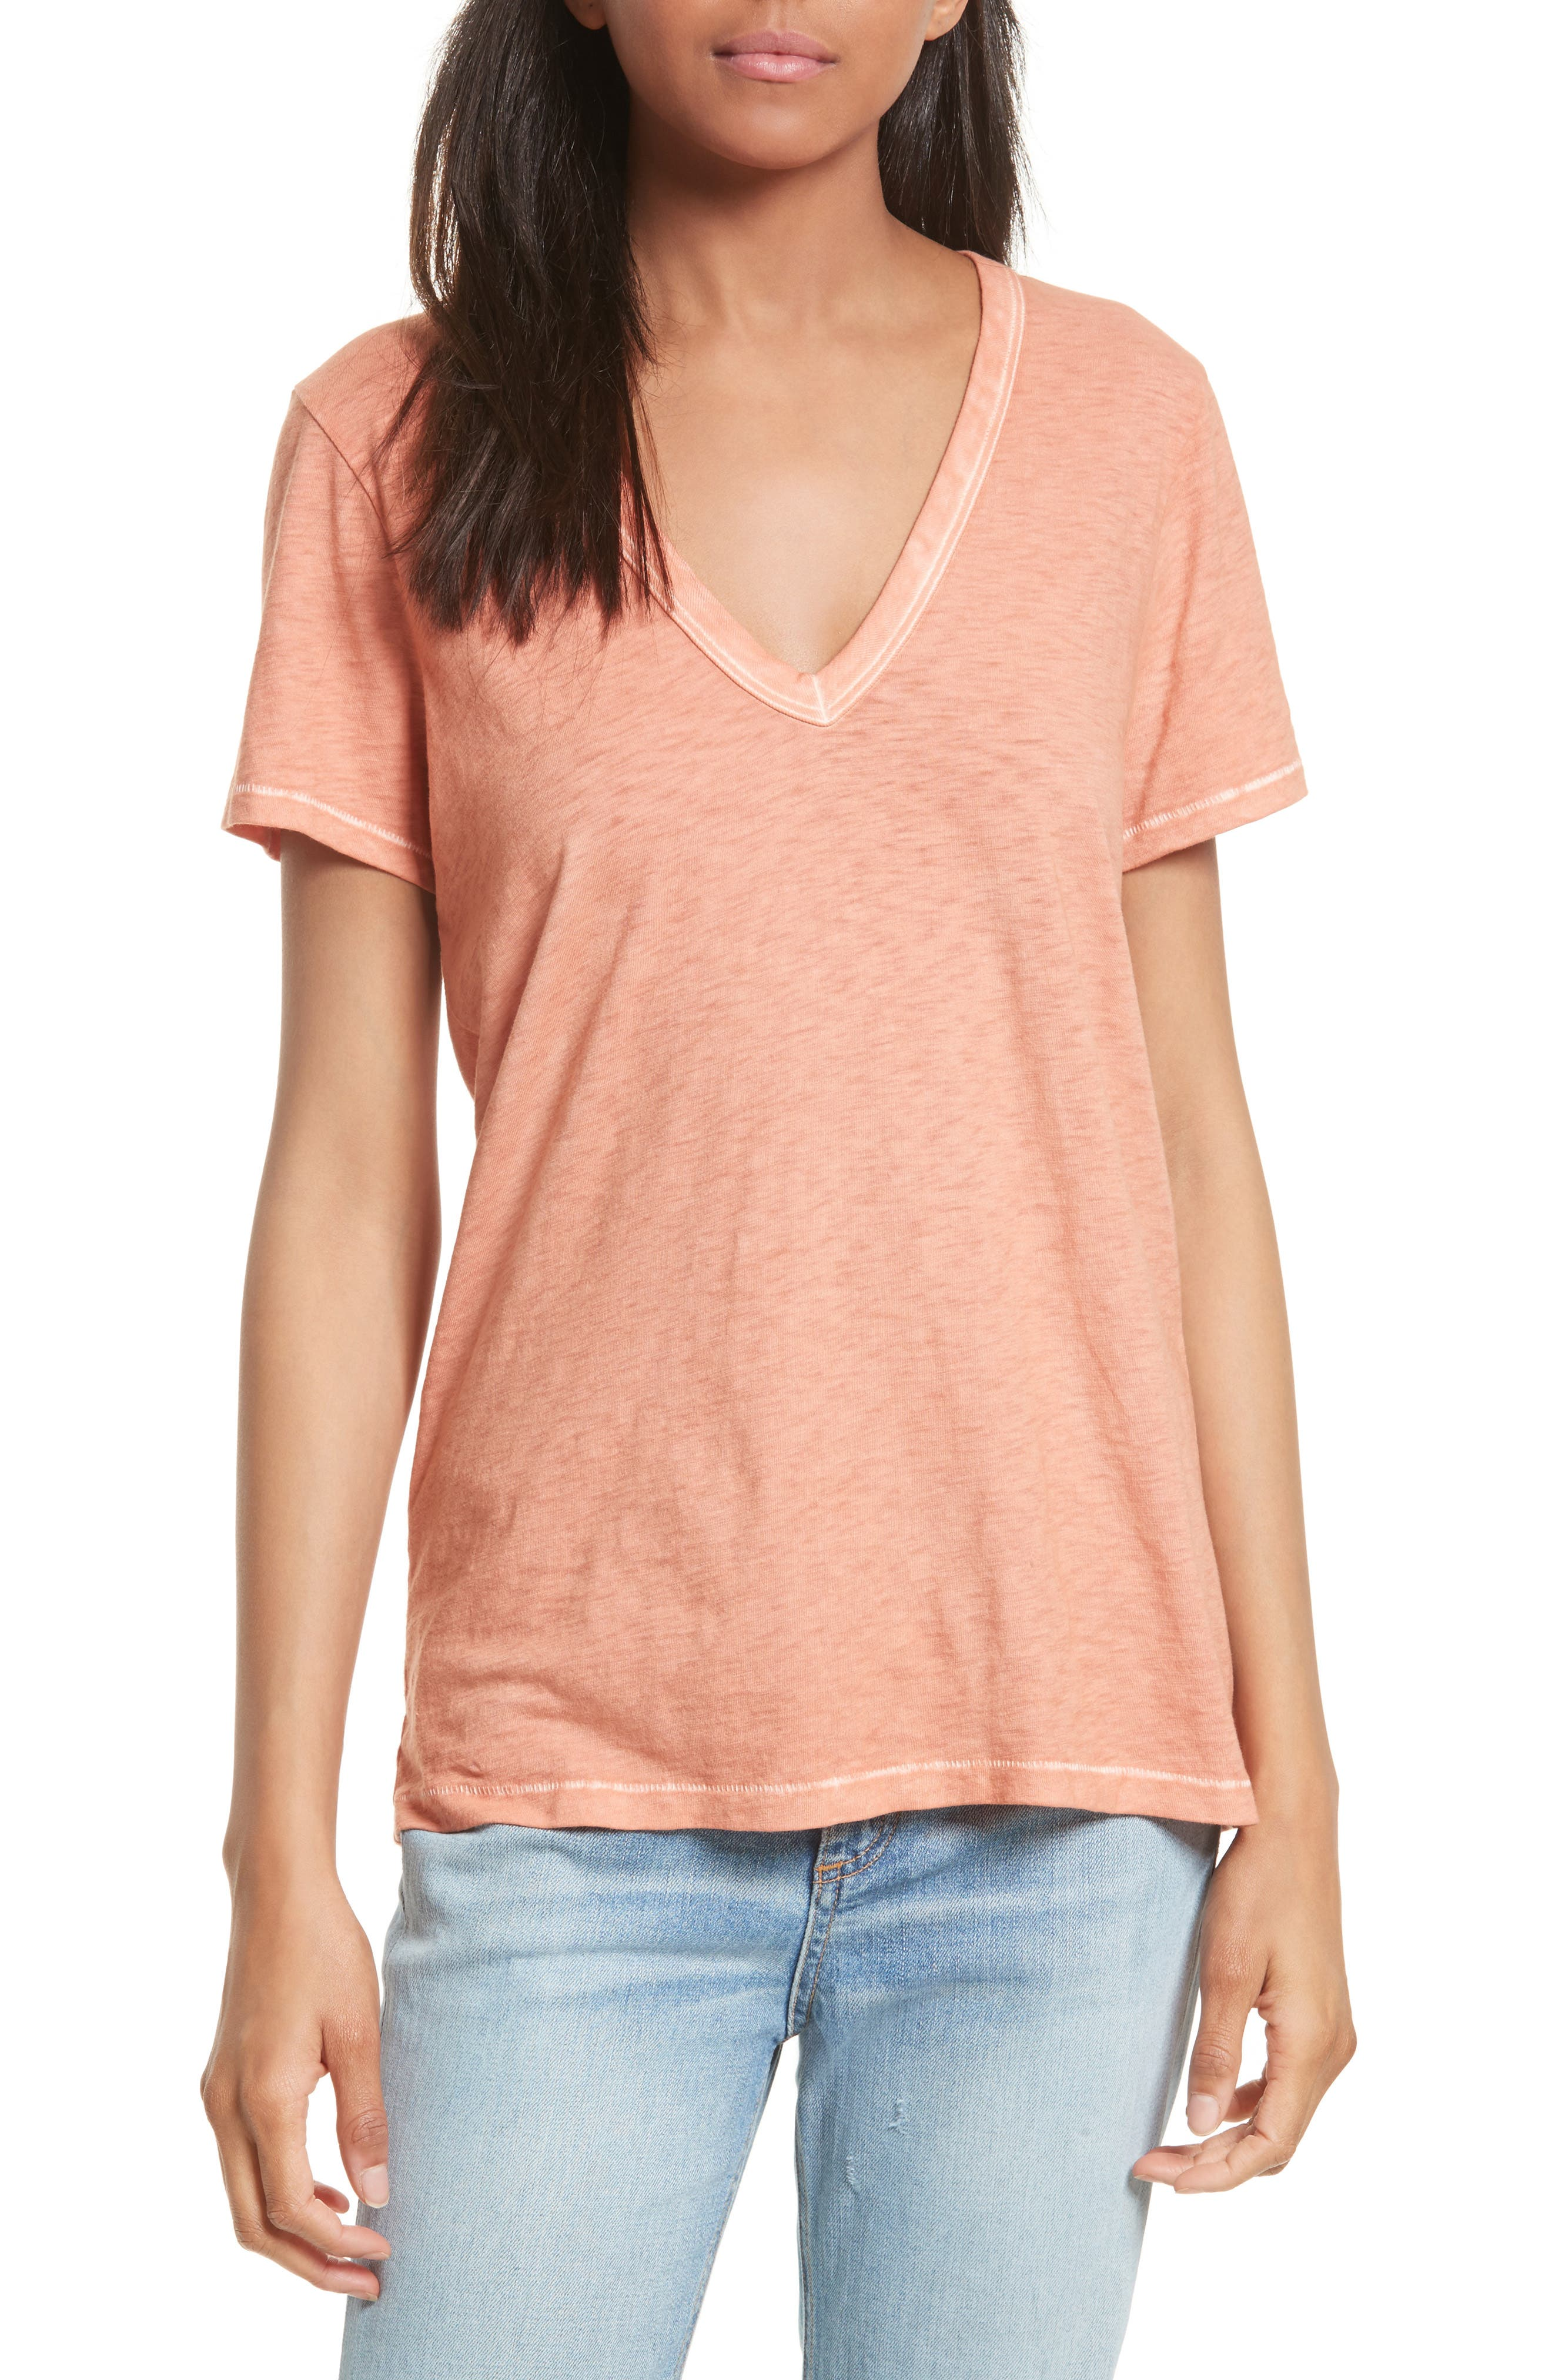 Alternate Image 1 Selected - rag & bone/JEAN Sublime Wash Cotton Tee